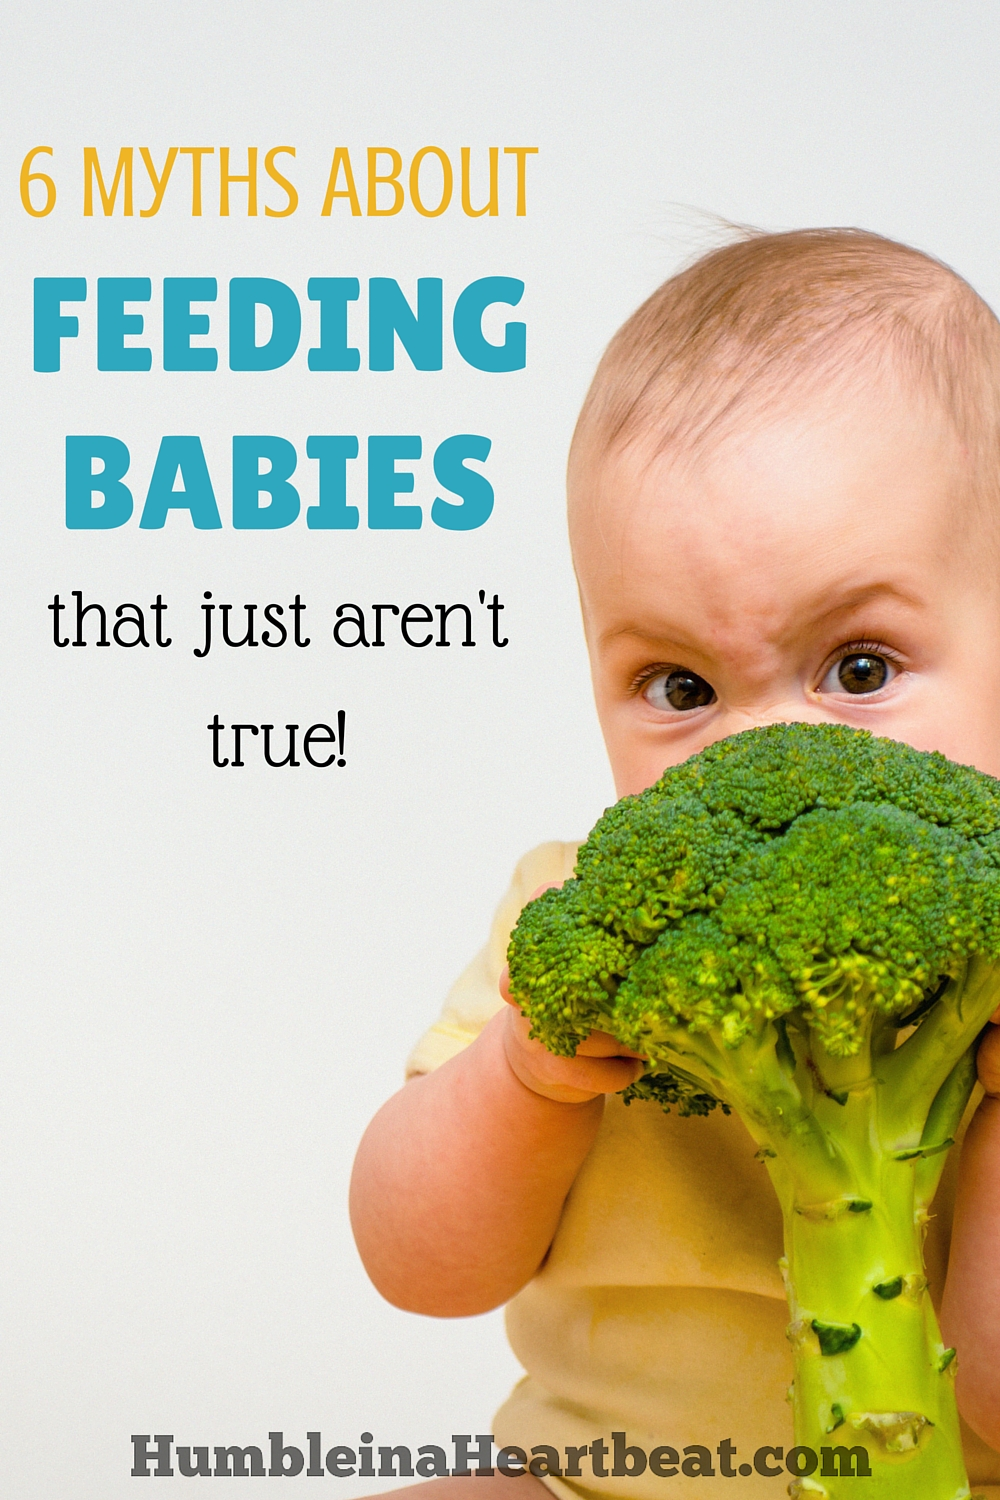 If you're ready to start feeding your baby food, you need to read this first. So many things about feeding babies just aren't true!